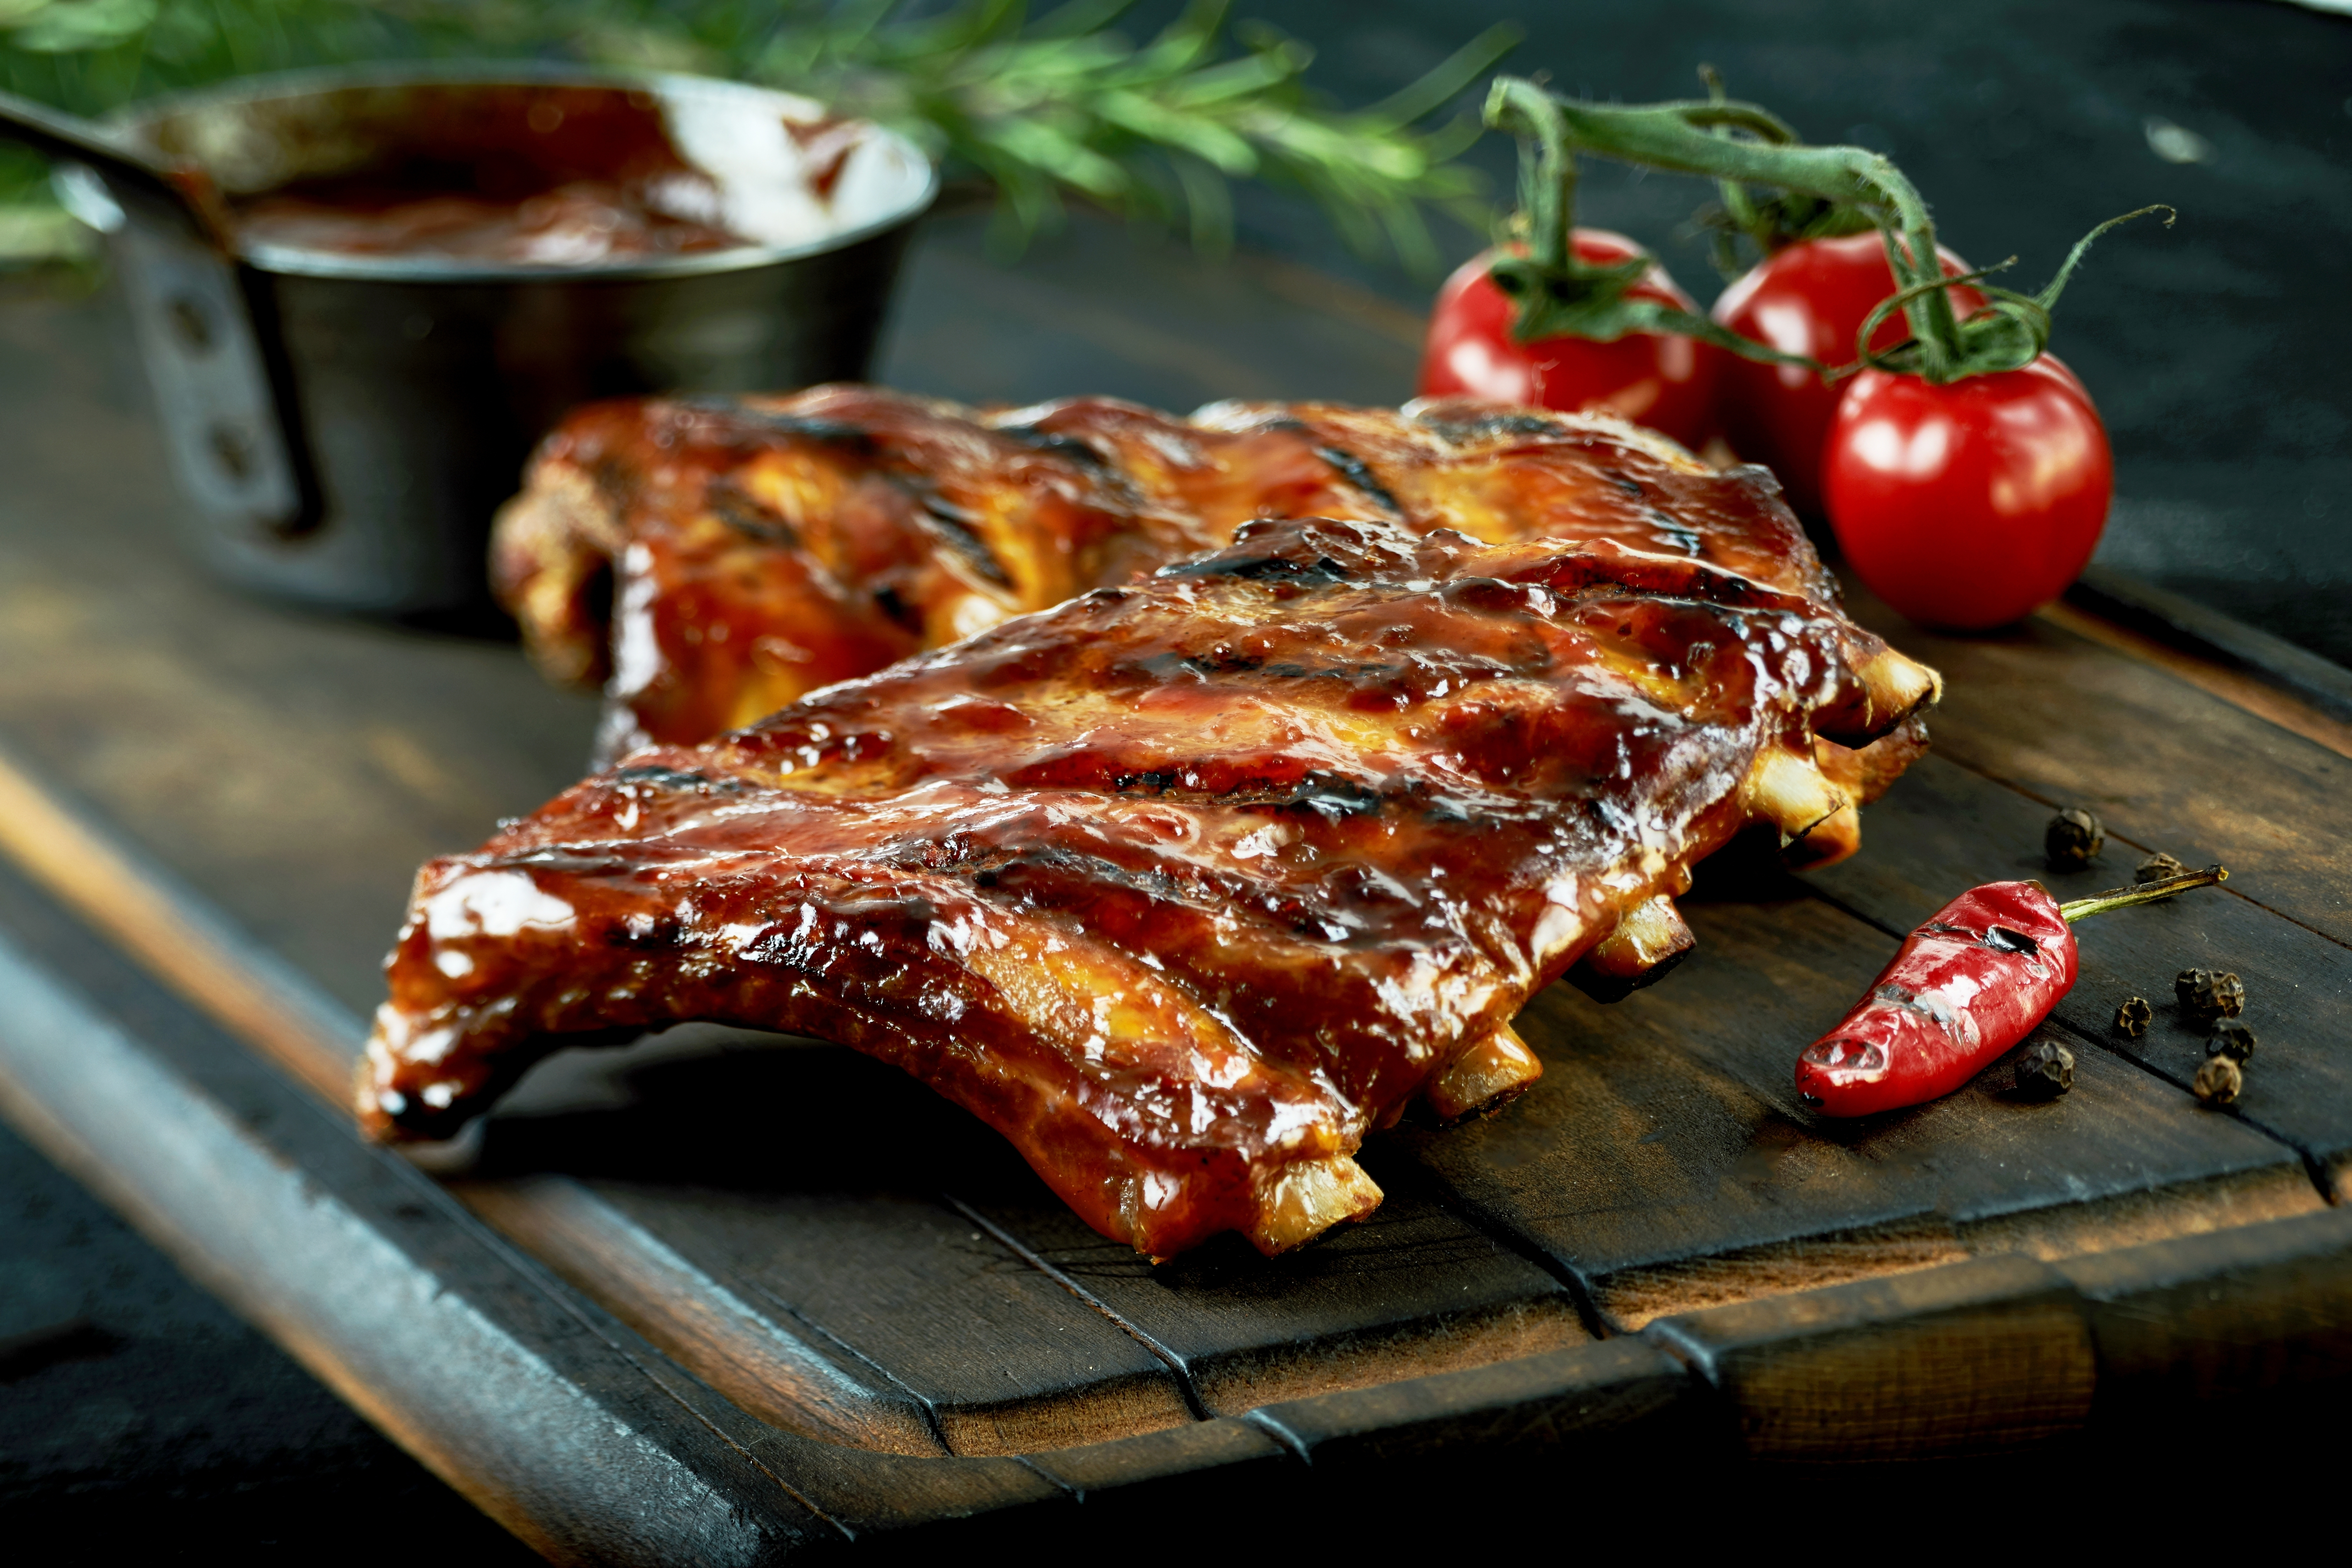 How to Grill Ribs – Well Textured and Smoky